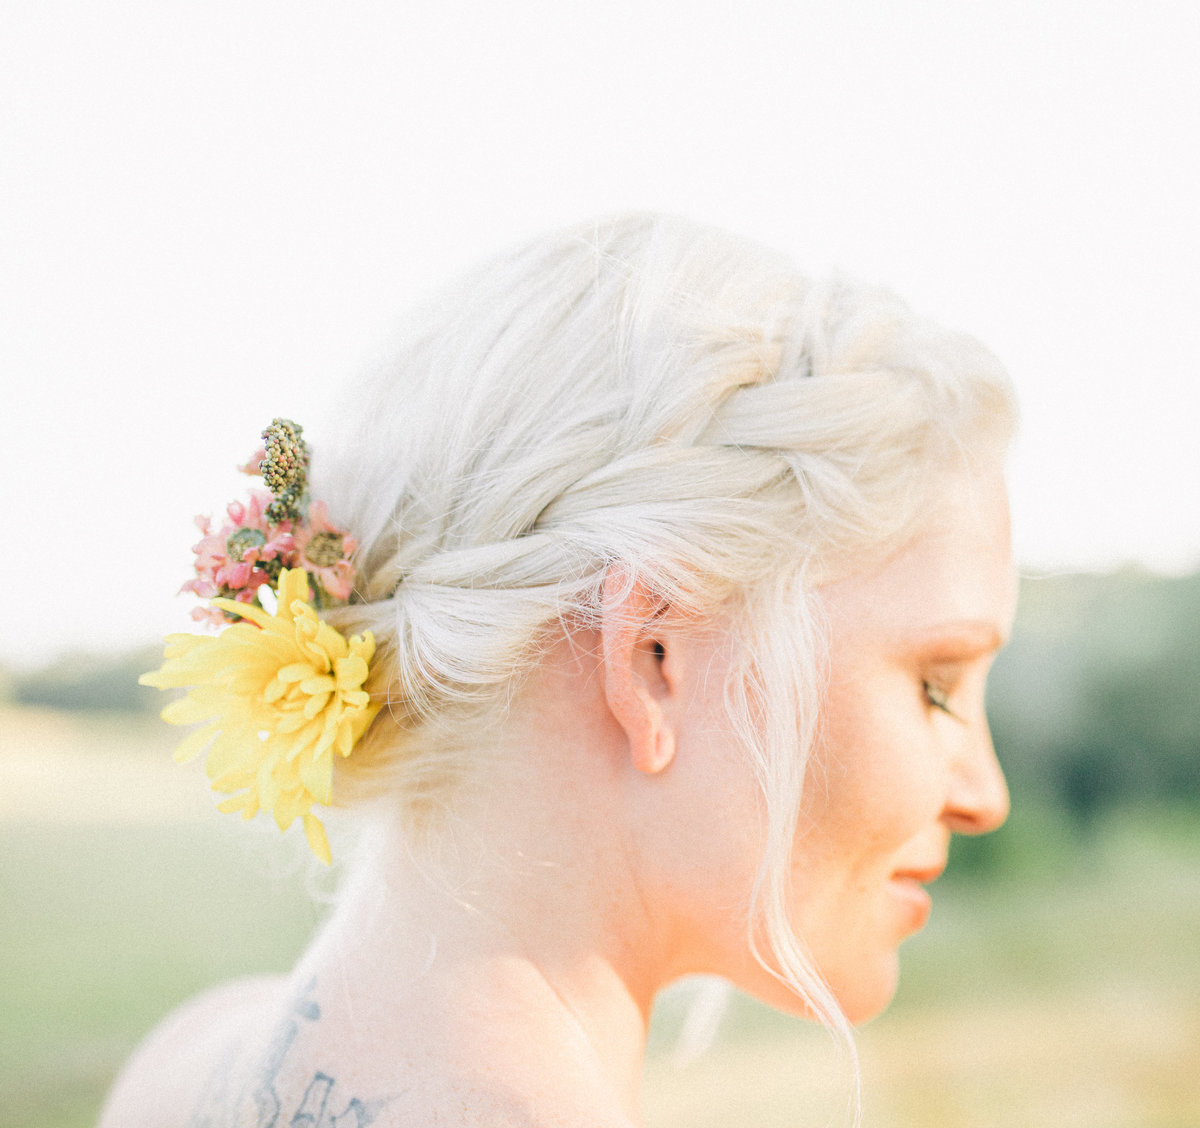 Atlanta flowery branch small wedding elopement fine art photographer_-109